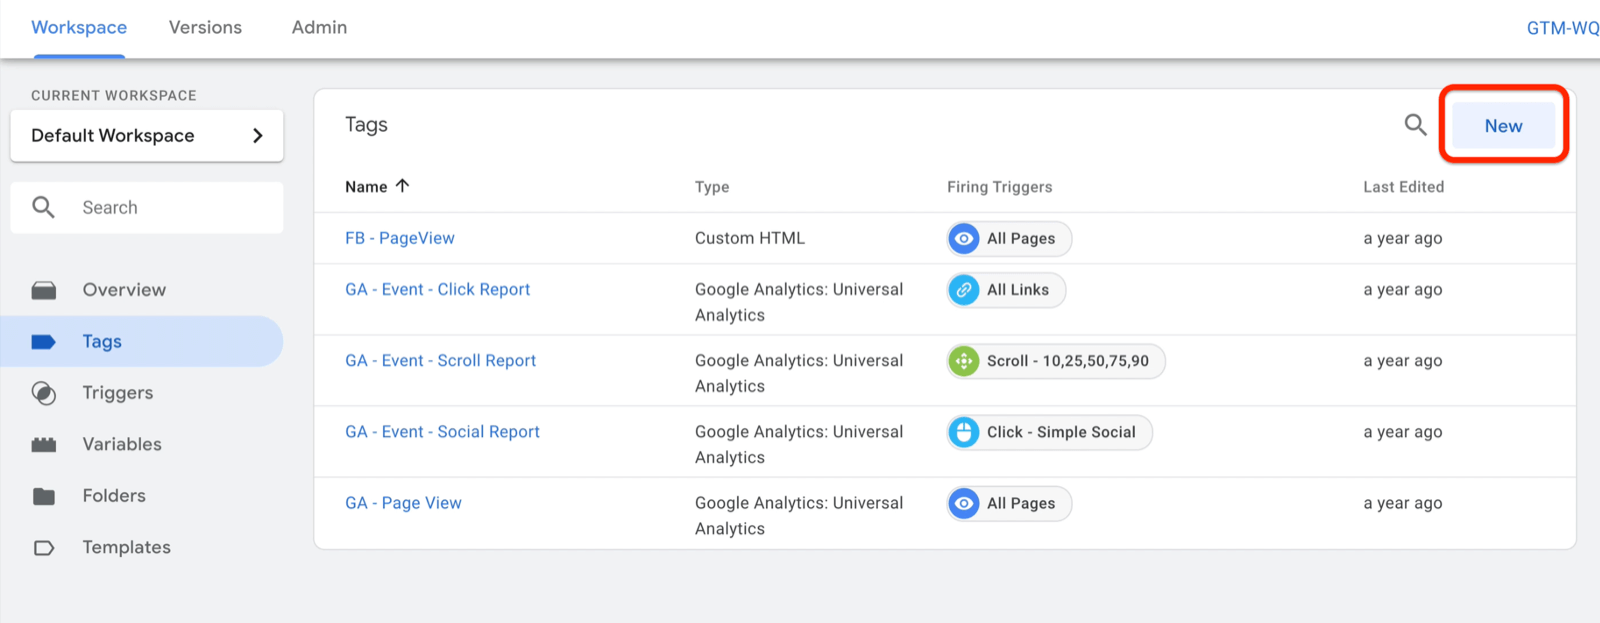 example google tag manager dashboard workspace with tags selected and several example tags shown with new button highlighted on the top right